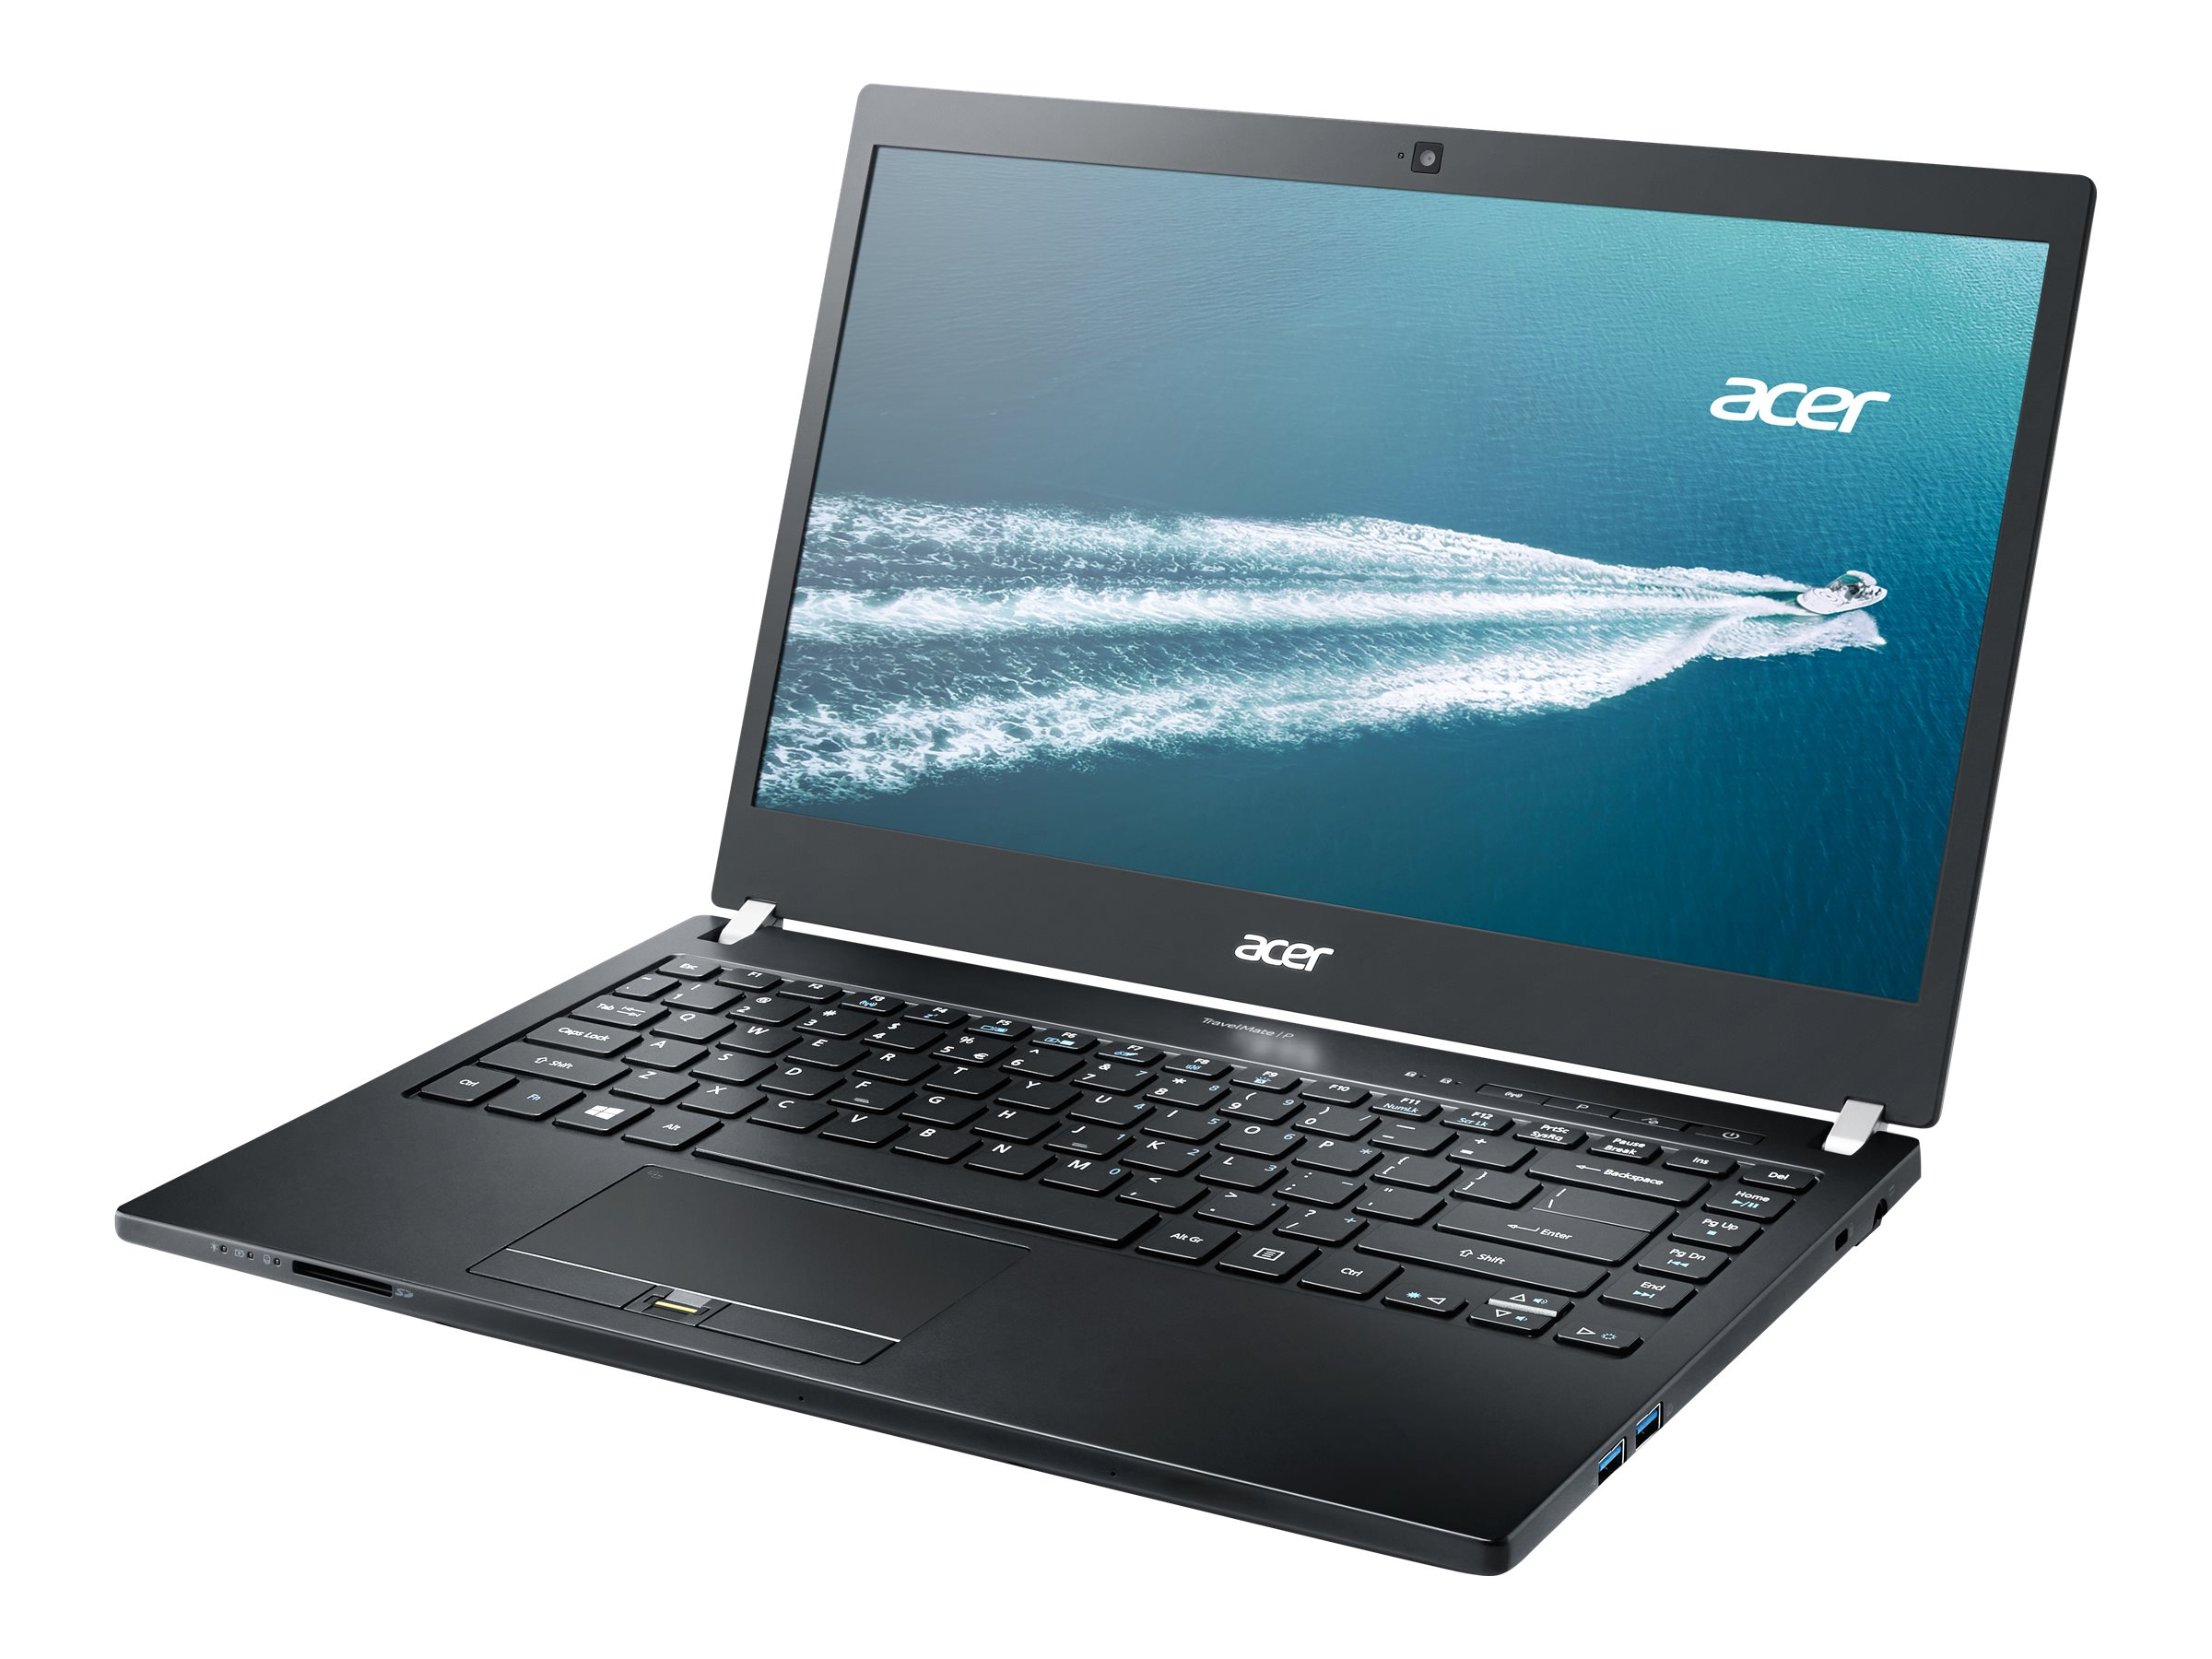 Acer TravelMate P645-M-3862 1.7GHz Core i3 14in display, NX.V8RAA.012, 18770898, Notebooks